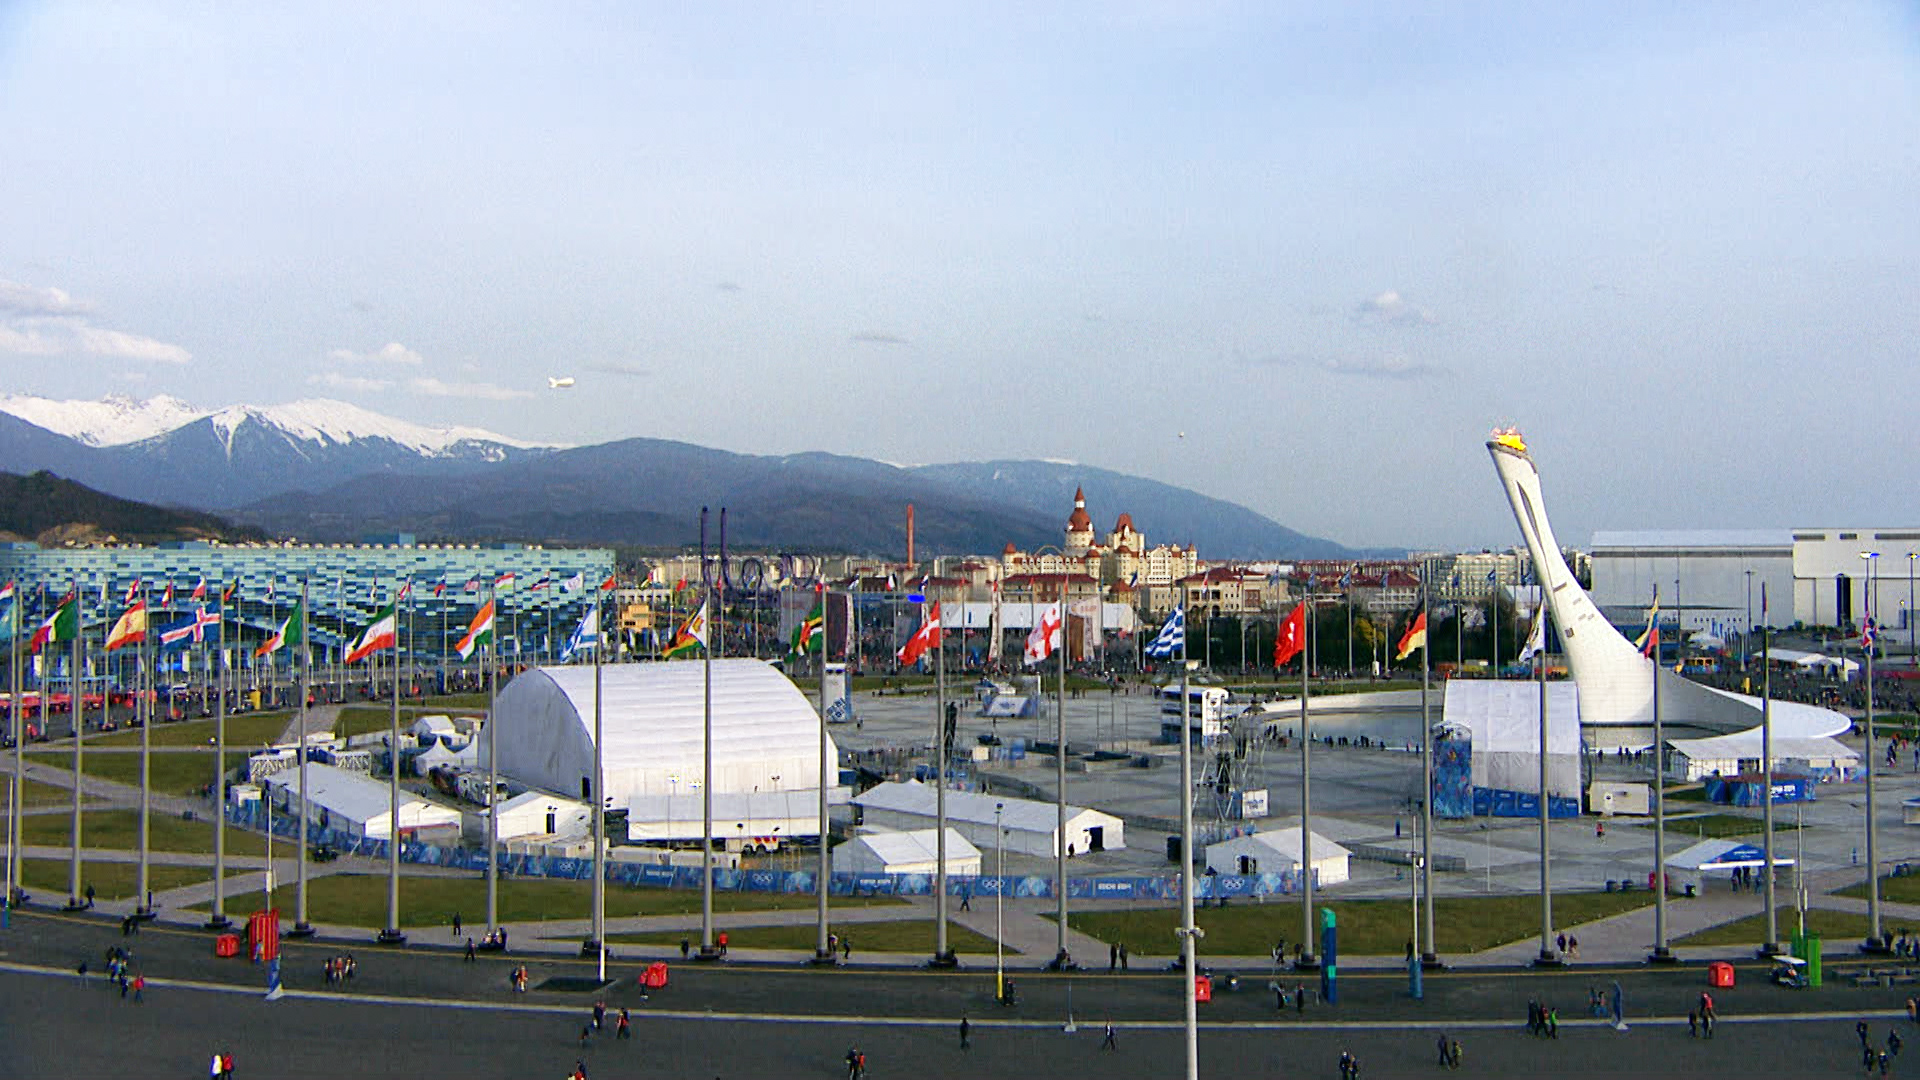 ΒLONDE and Elias Ledakis as Production Designer- Art Director and Set Designer, following an international call for tender, were appointed as Contractors for the MEDALS PLAZA – Sochi 2014 Winter Olympic Games